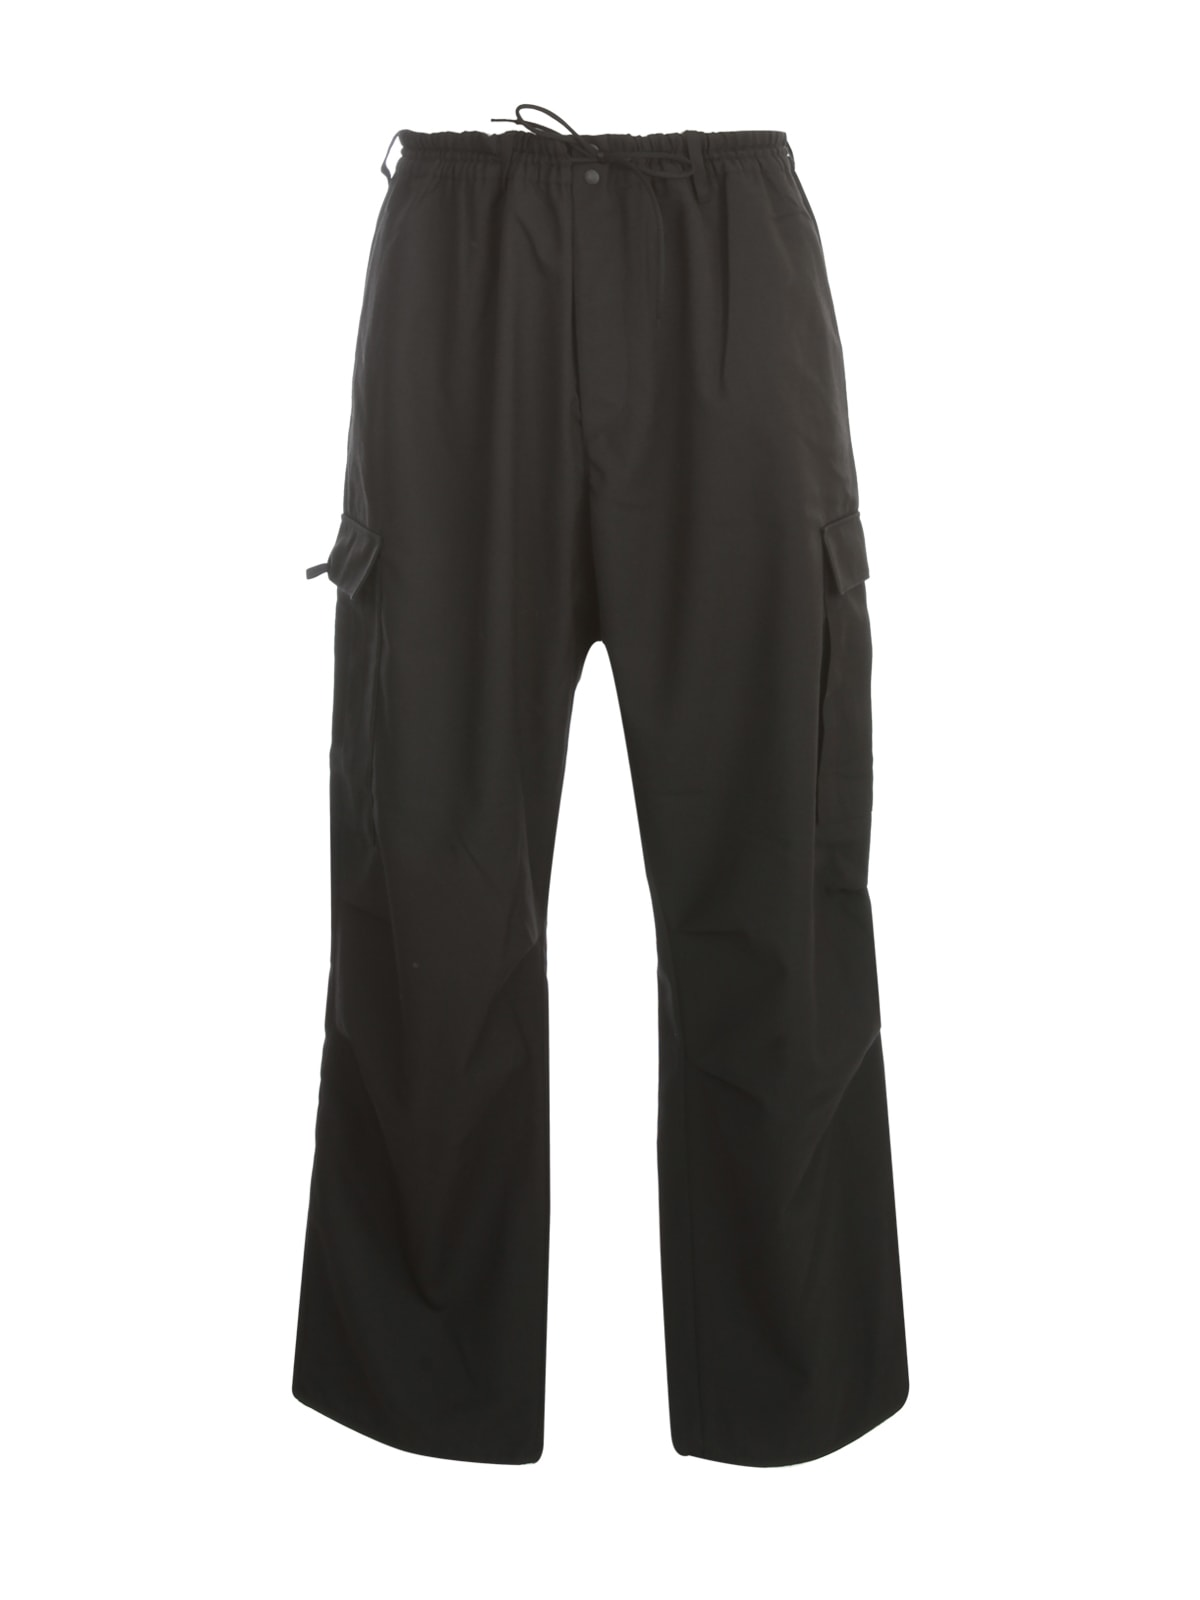 Y-3 M Classic Winter Wool Cargo Pants